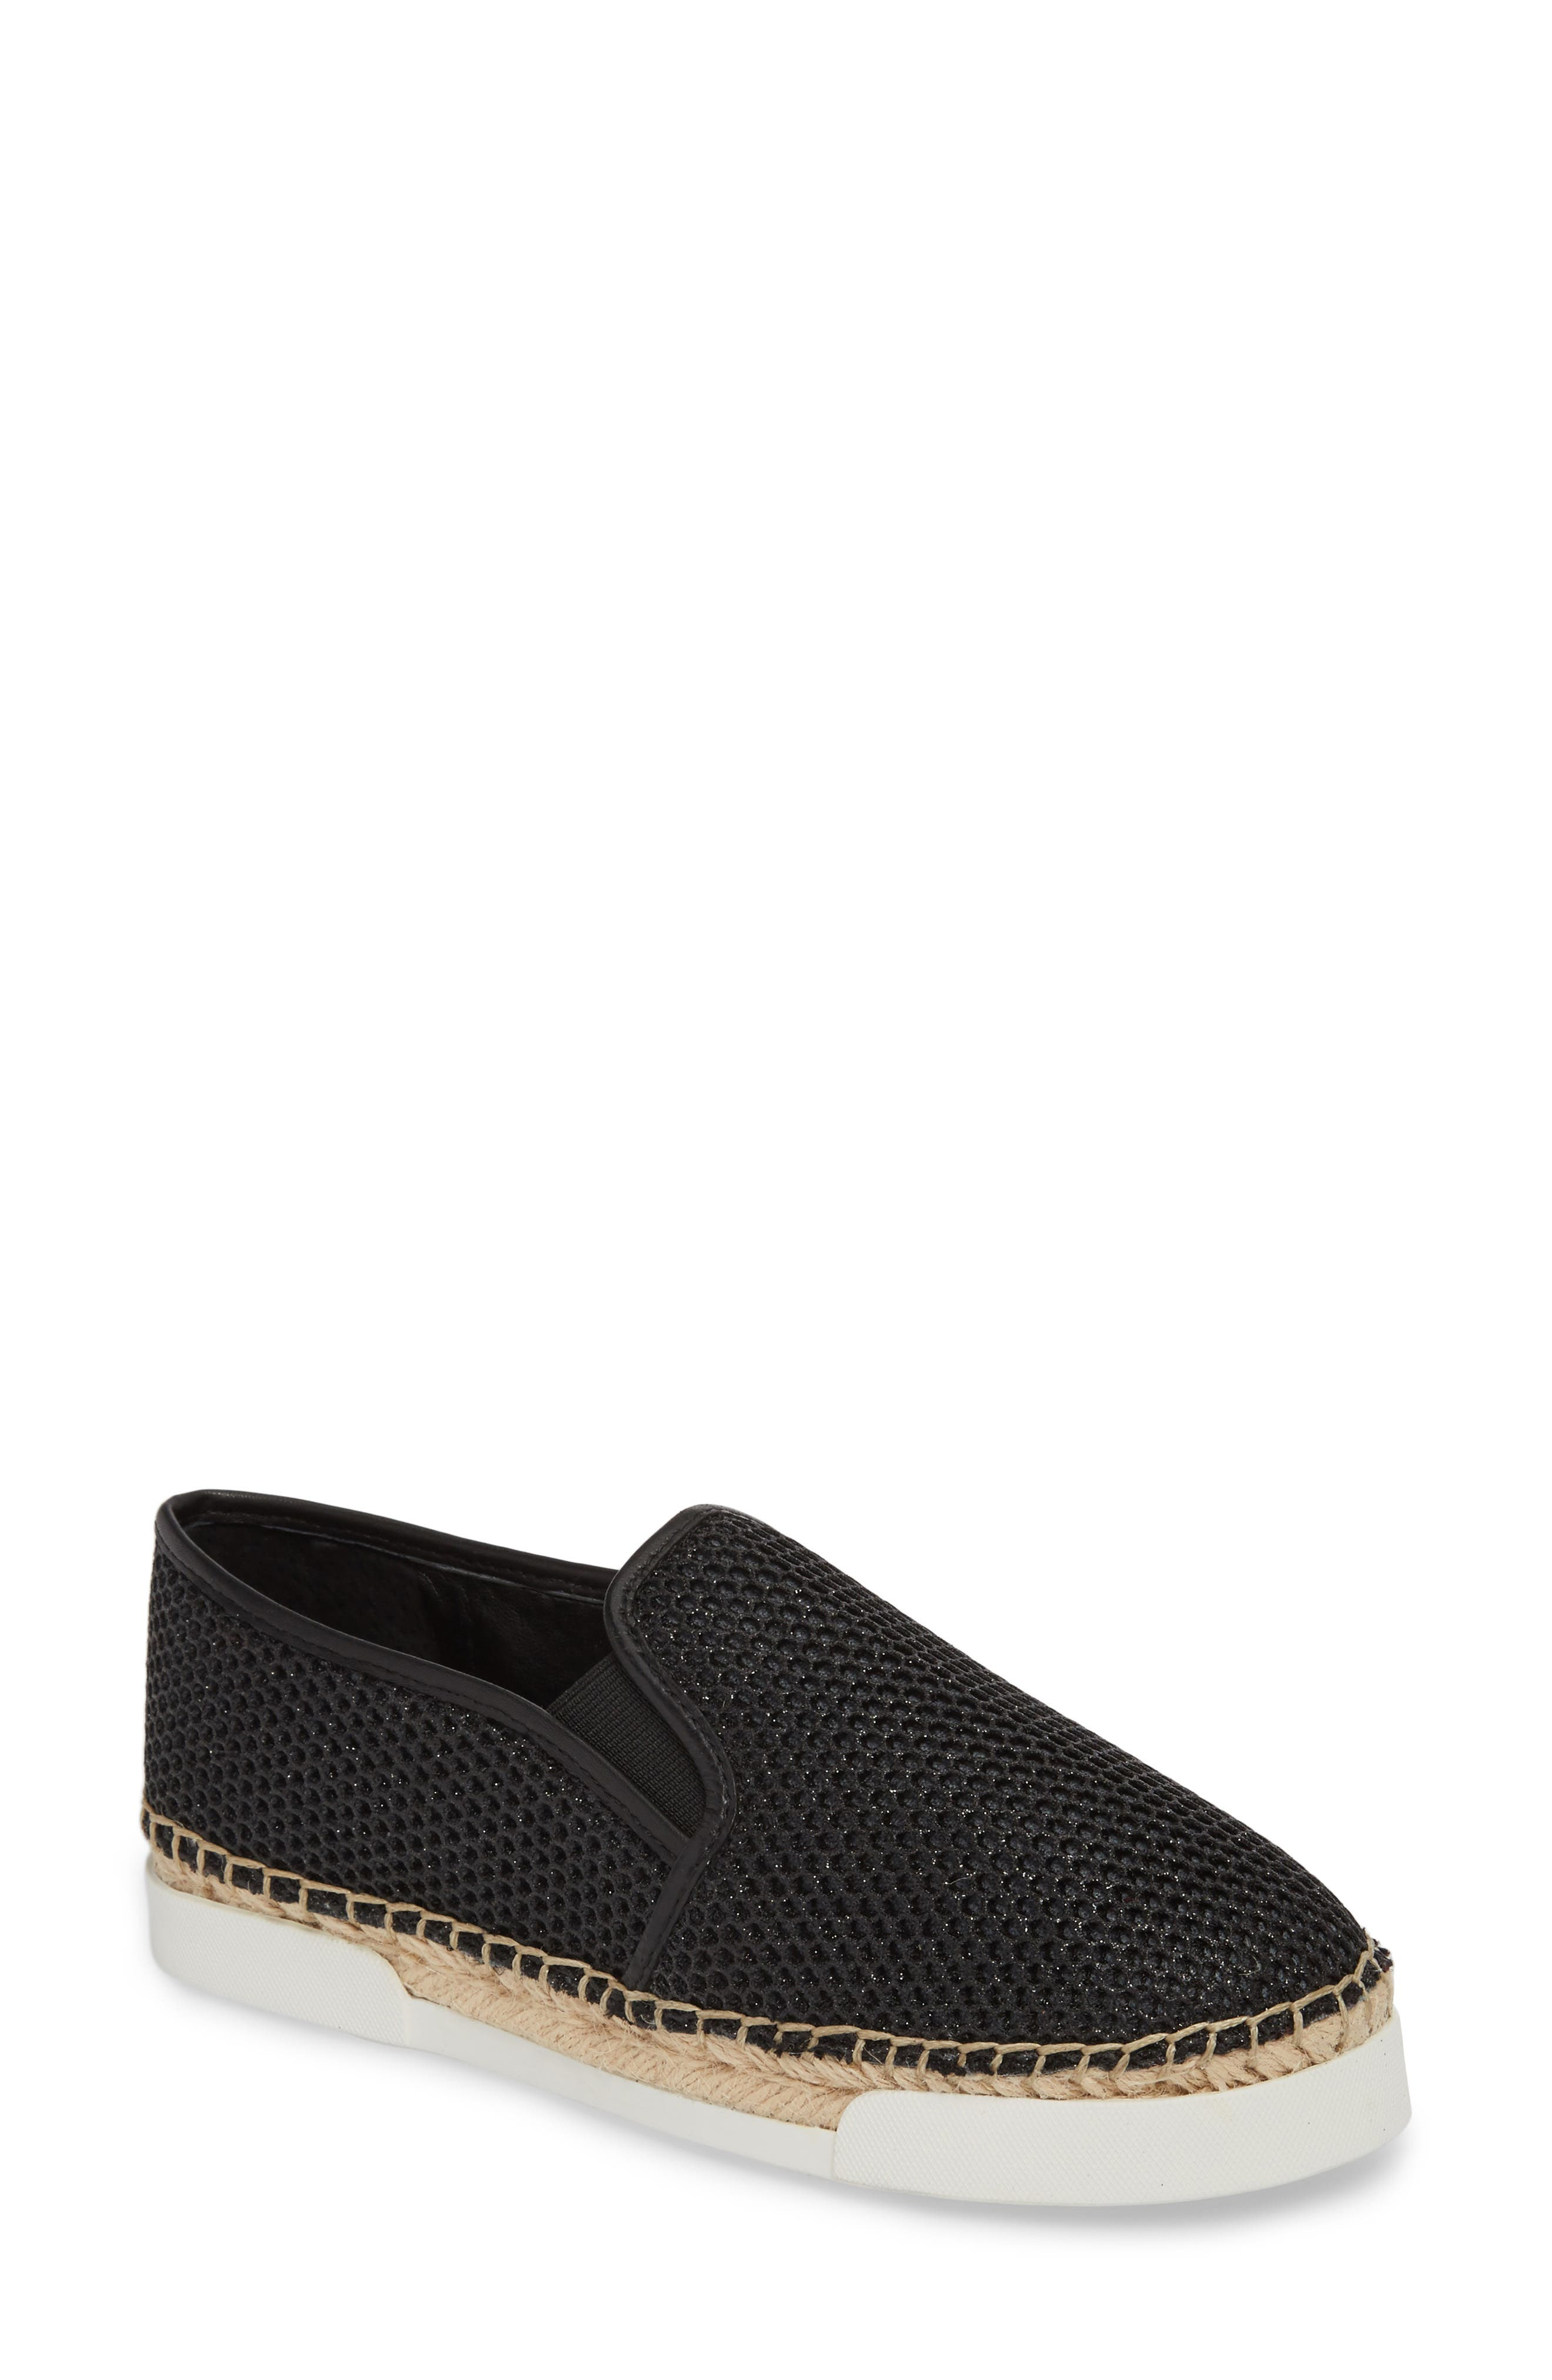 VINCE CAMUTO Tambie Slip-On Sneaker, Main, color, 001